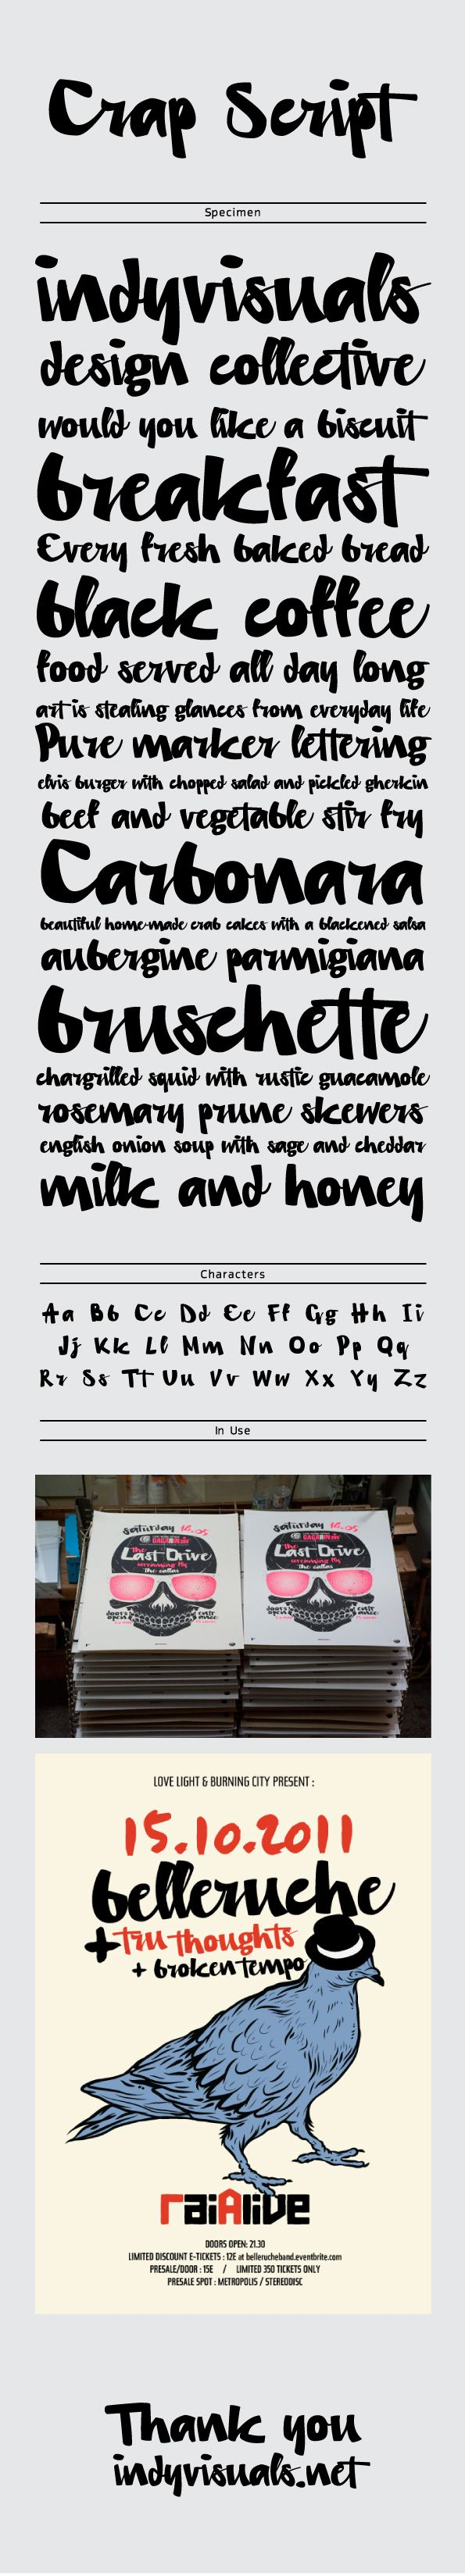 Crap Script / Typeface by til01 , via Behance - reminds me of the chocolate skateboards typeface.